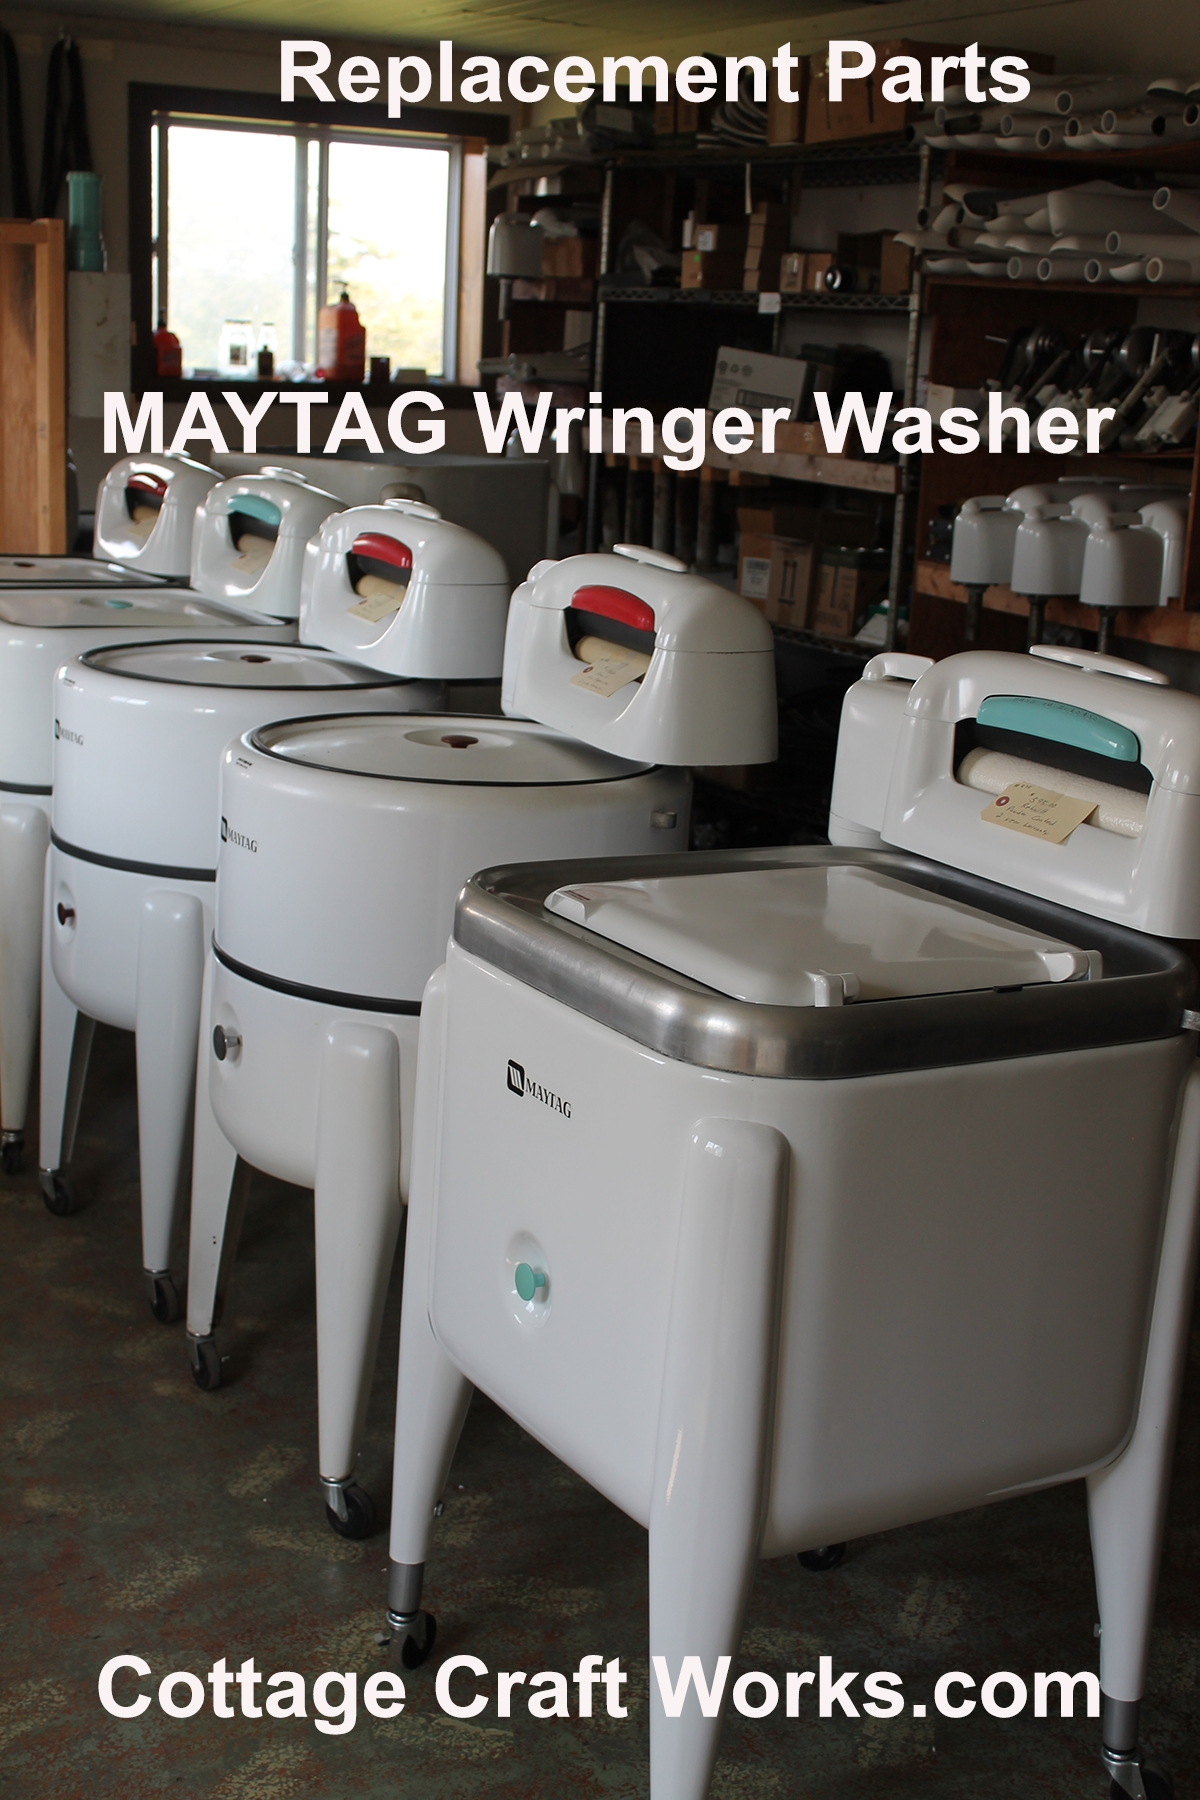 Maytag Wringer Washer Parts